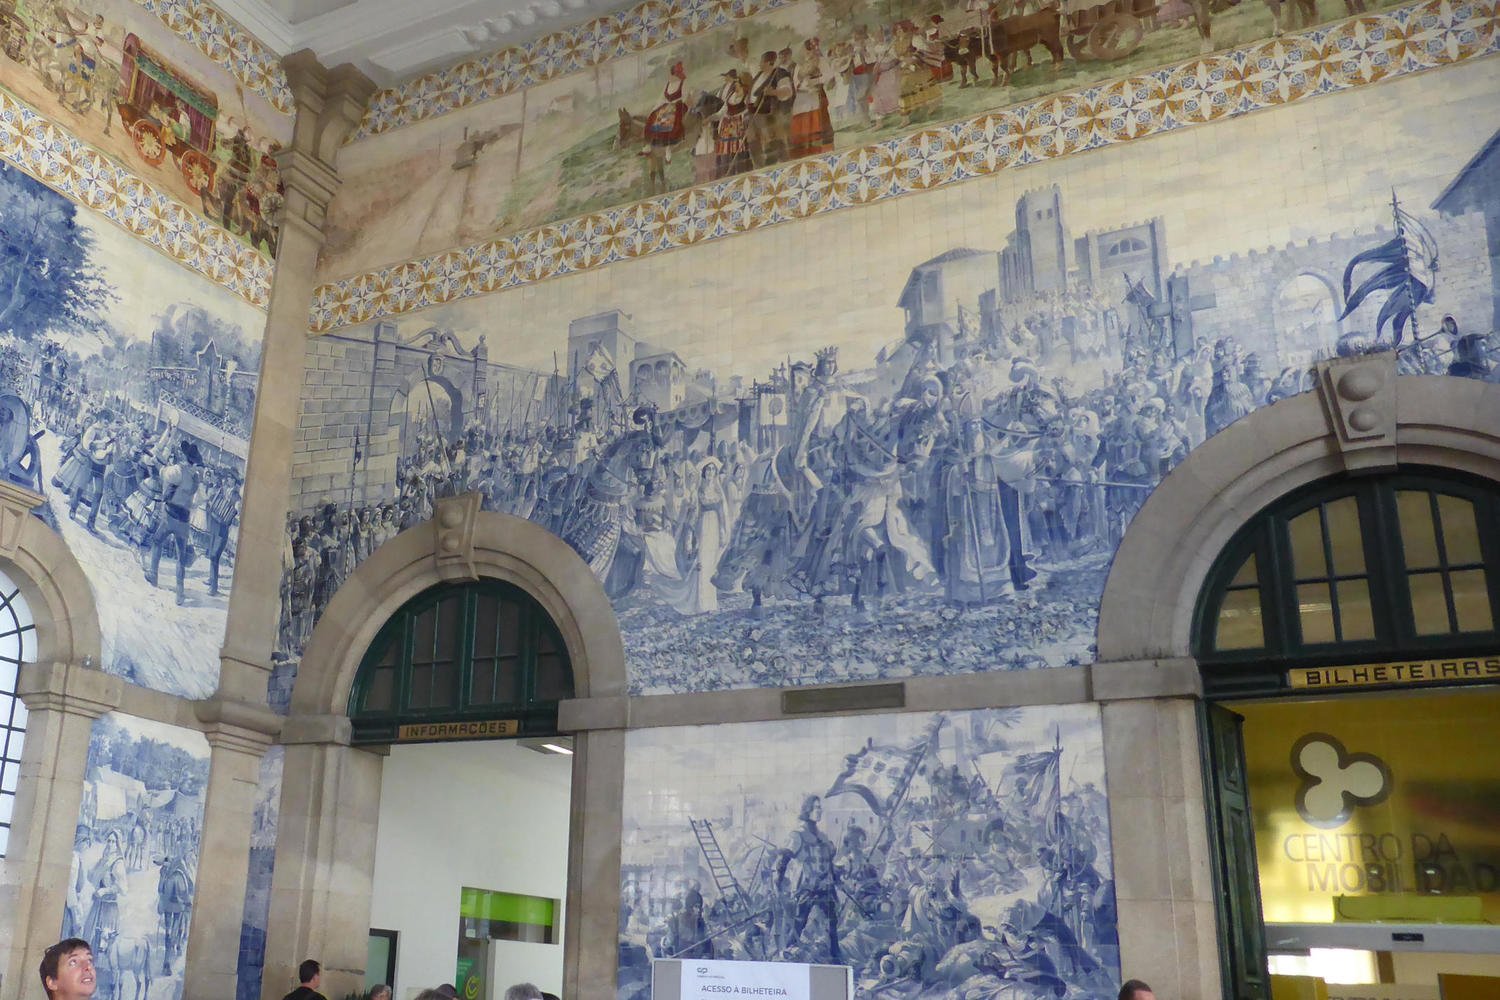 The famous azulejo tiles of Sao Bento train station in Porto